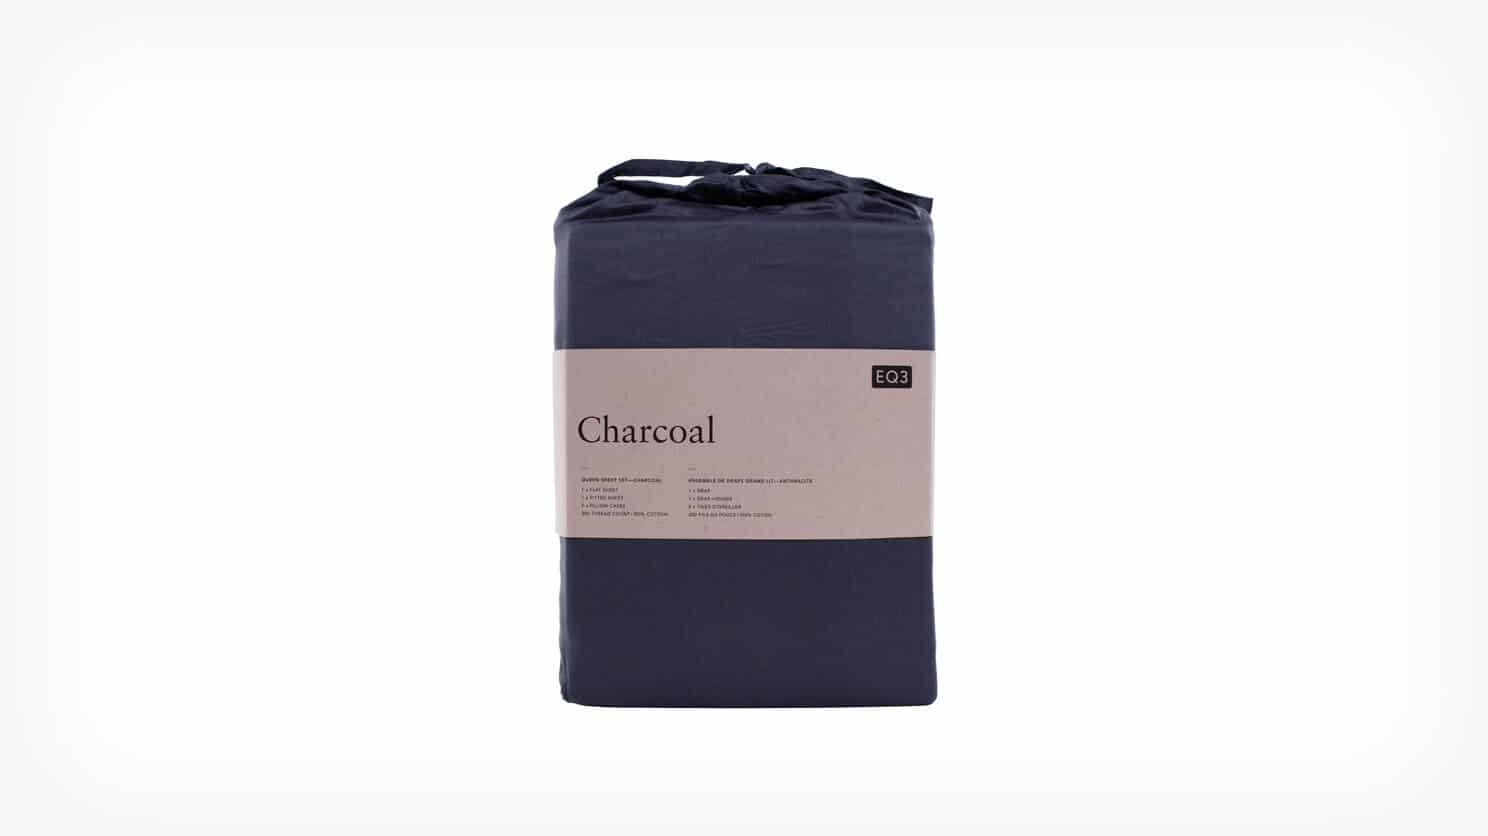 Charcoal Cotton King Sheet Set Packaged